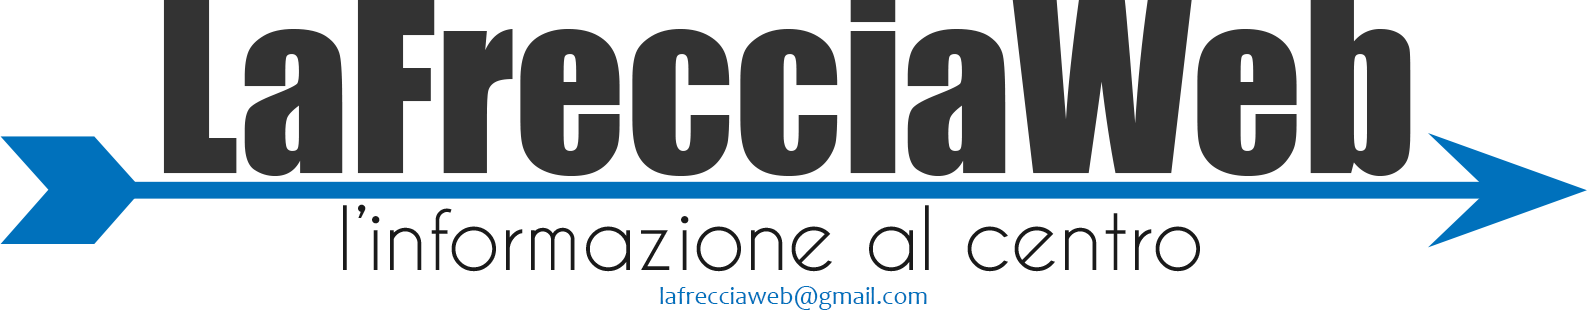 lafrecciaweb.it